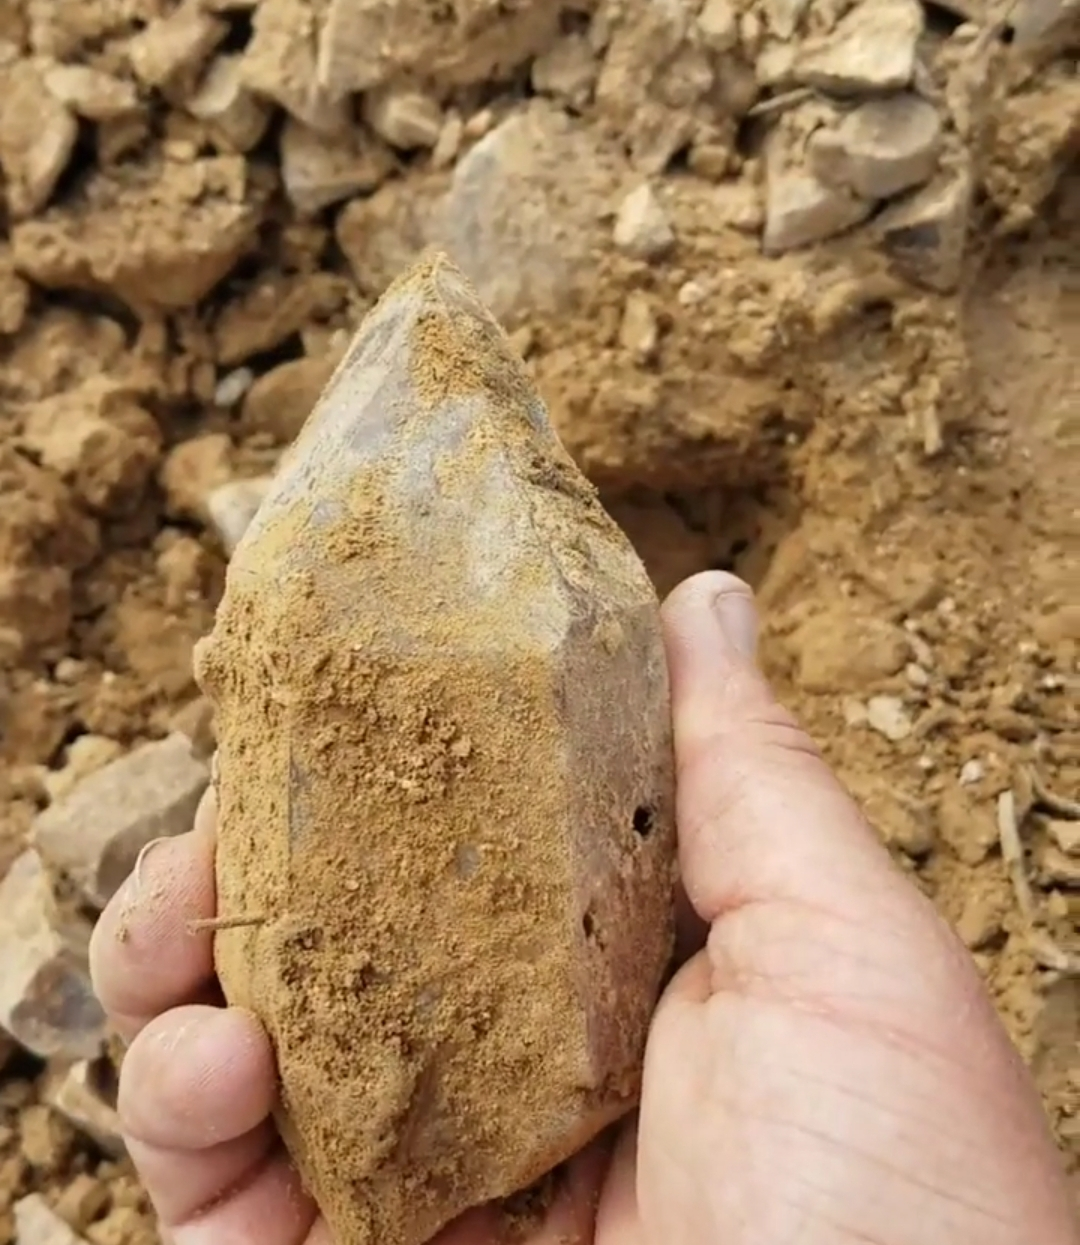 Large Smoky Mined in California, fresh out of the earth for the first time